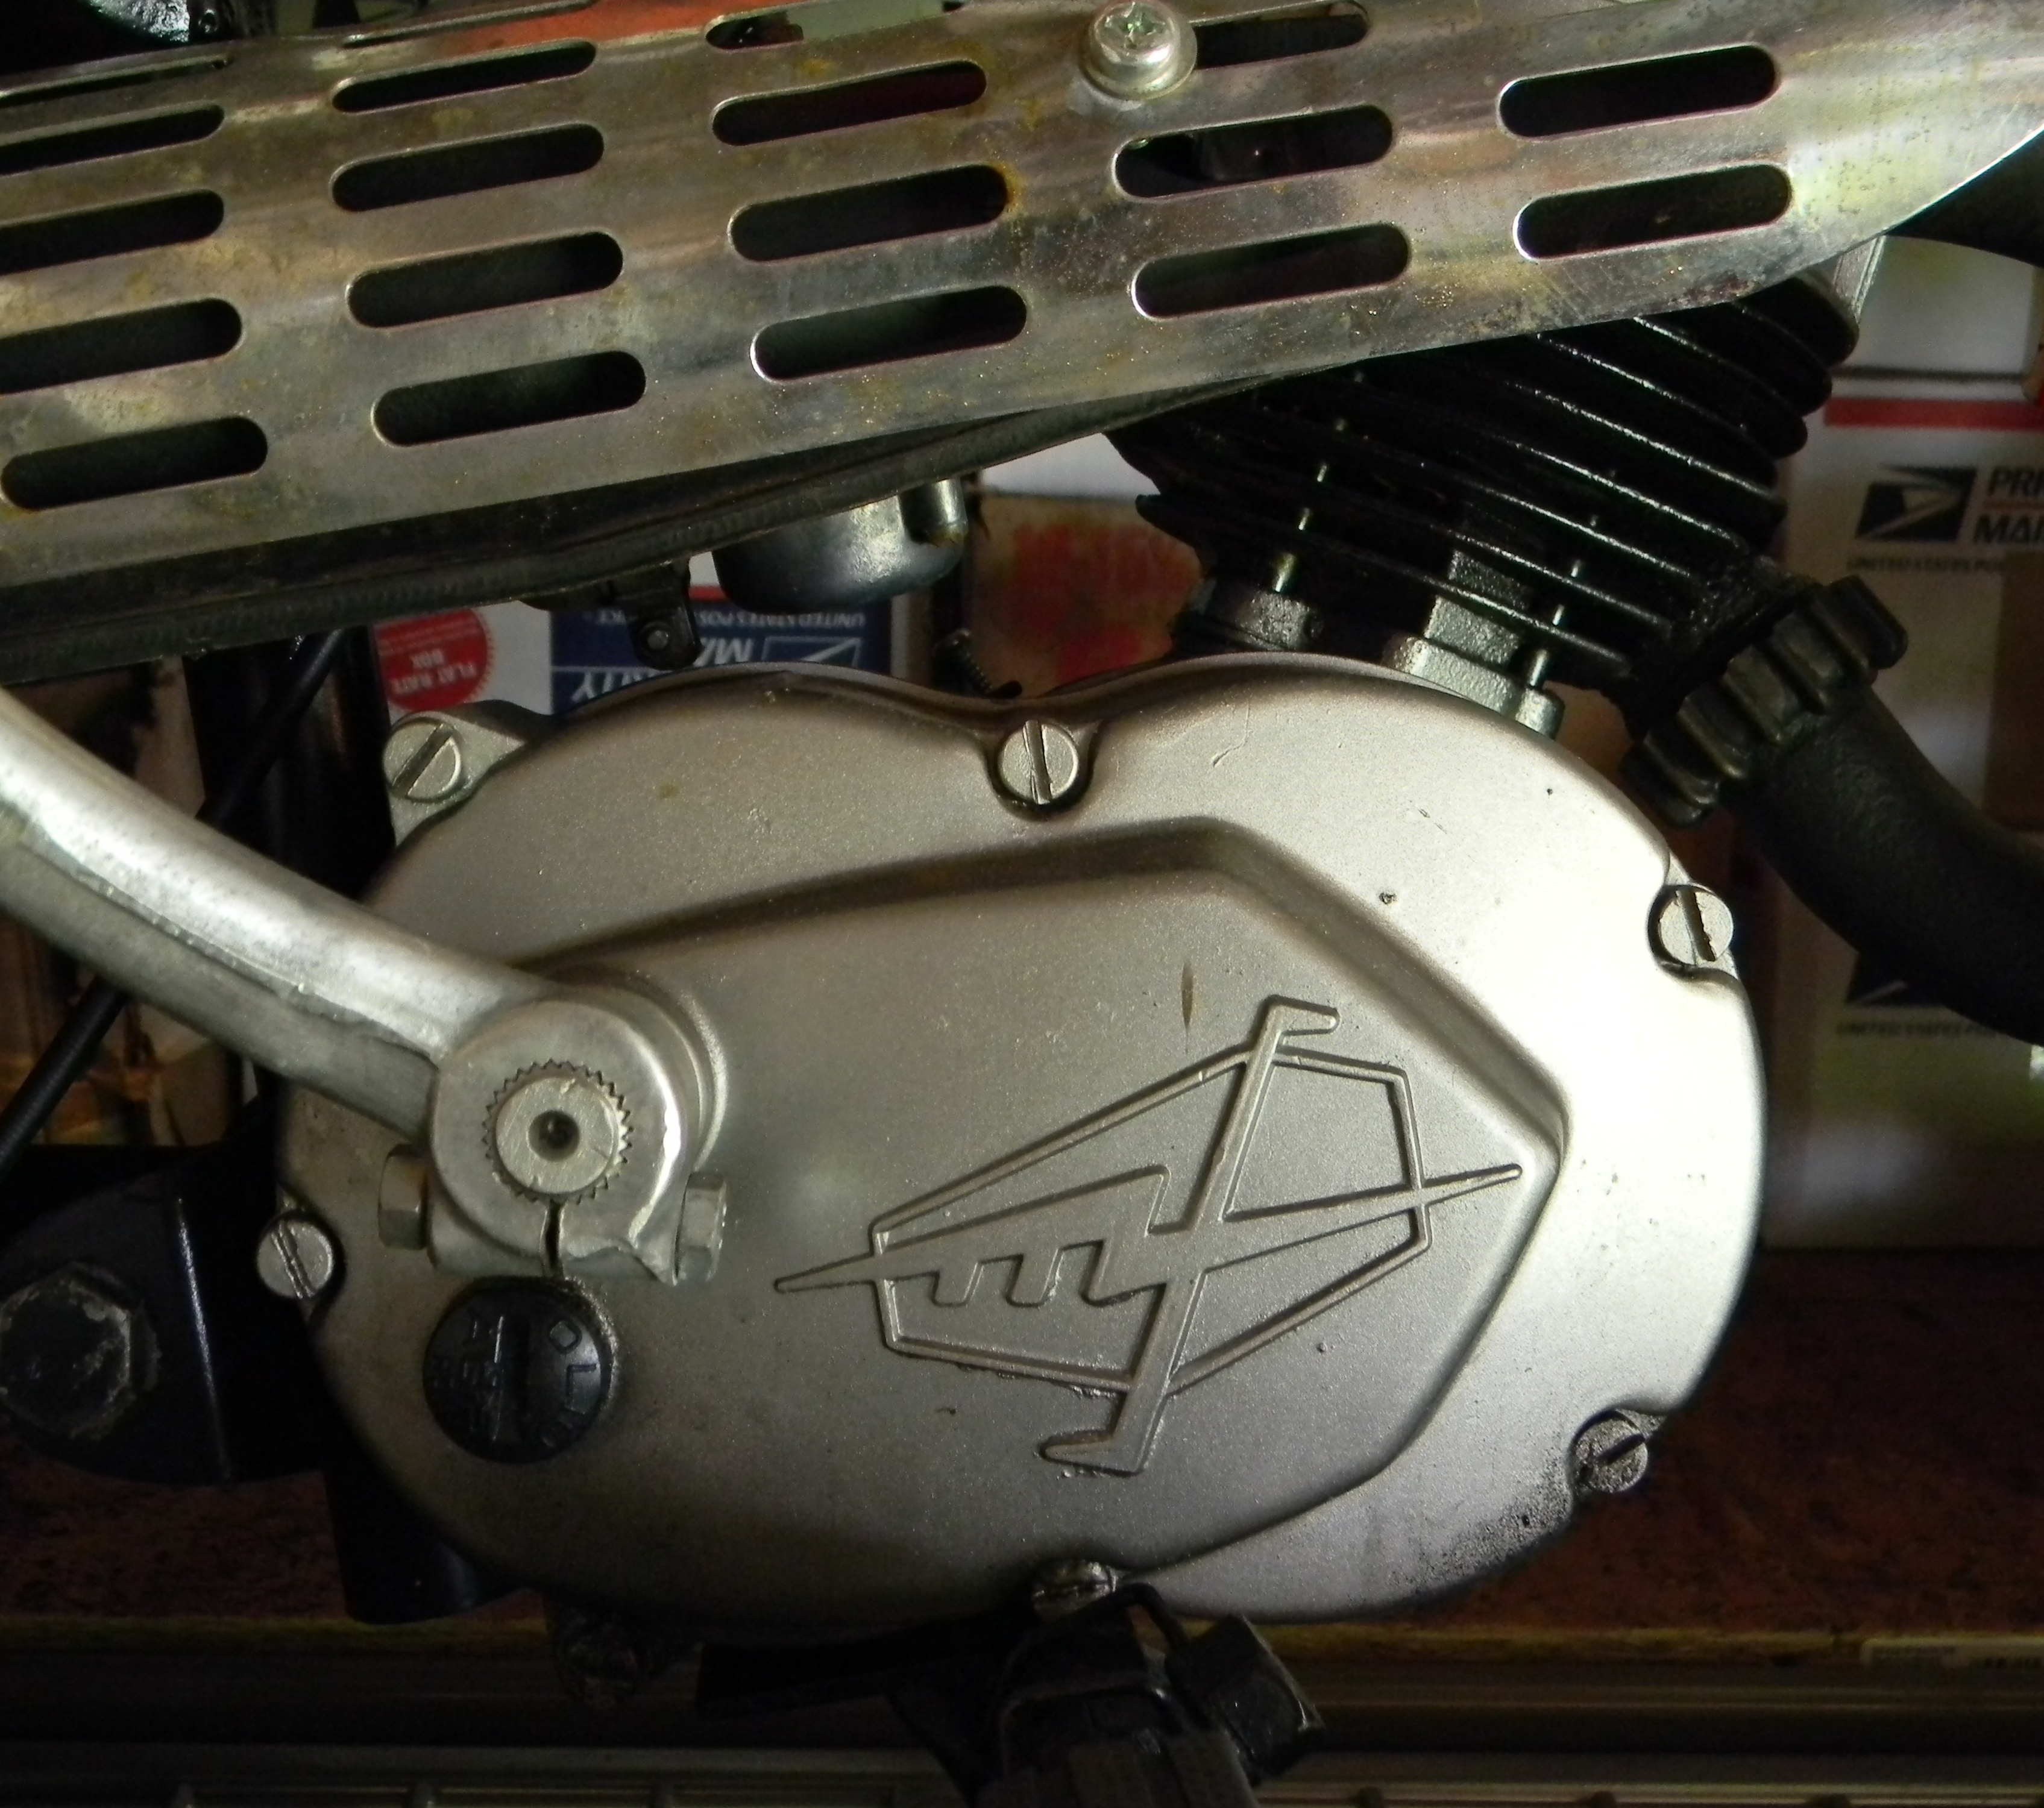 Indentfying Your Indian Dirtbike. Is your Indian powered by a Franco  Morini, Motori Minarelli, Fuji 100?